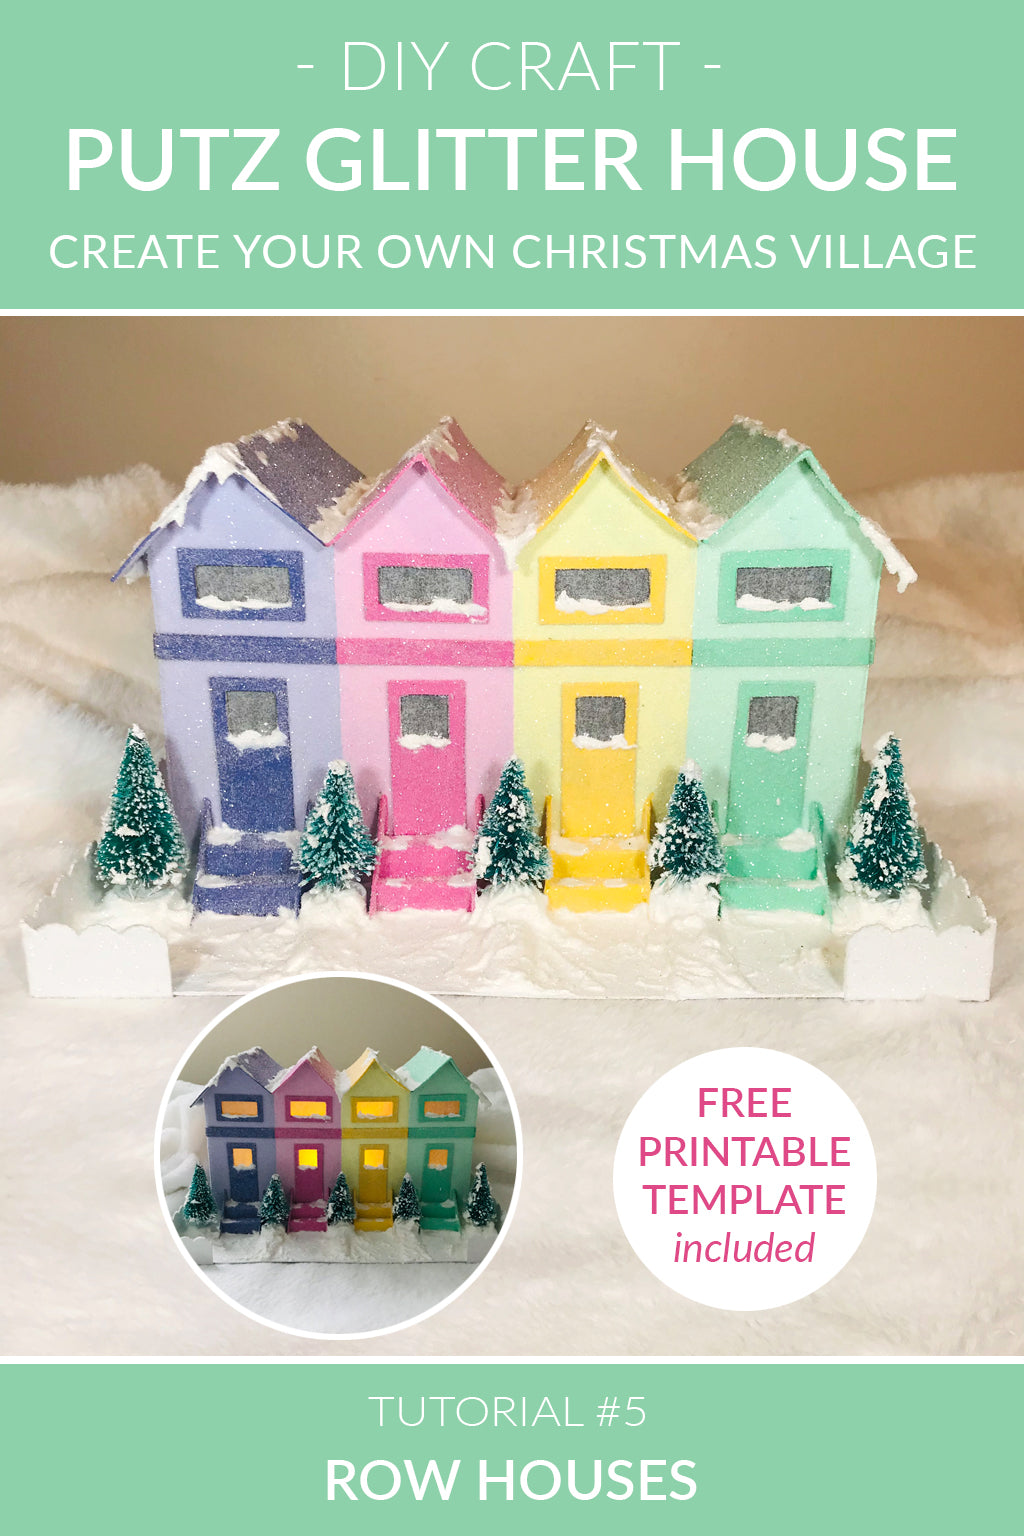 DIY Christmas Village - Putz Glitter House - Tutorial #5 - Row Houses